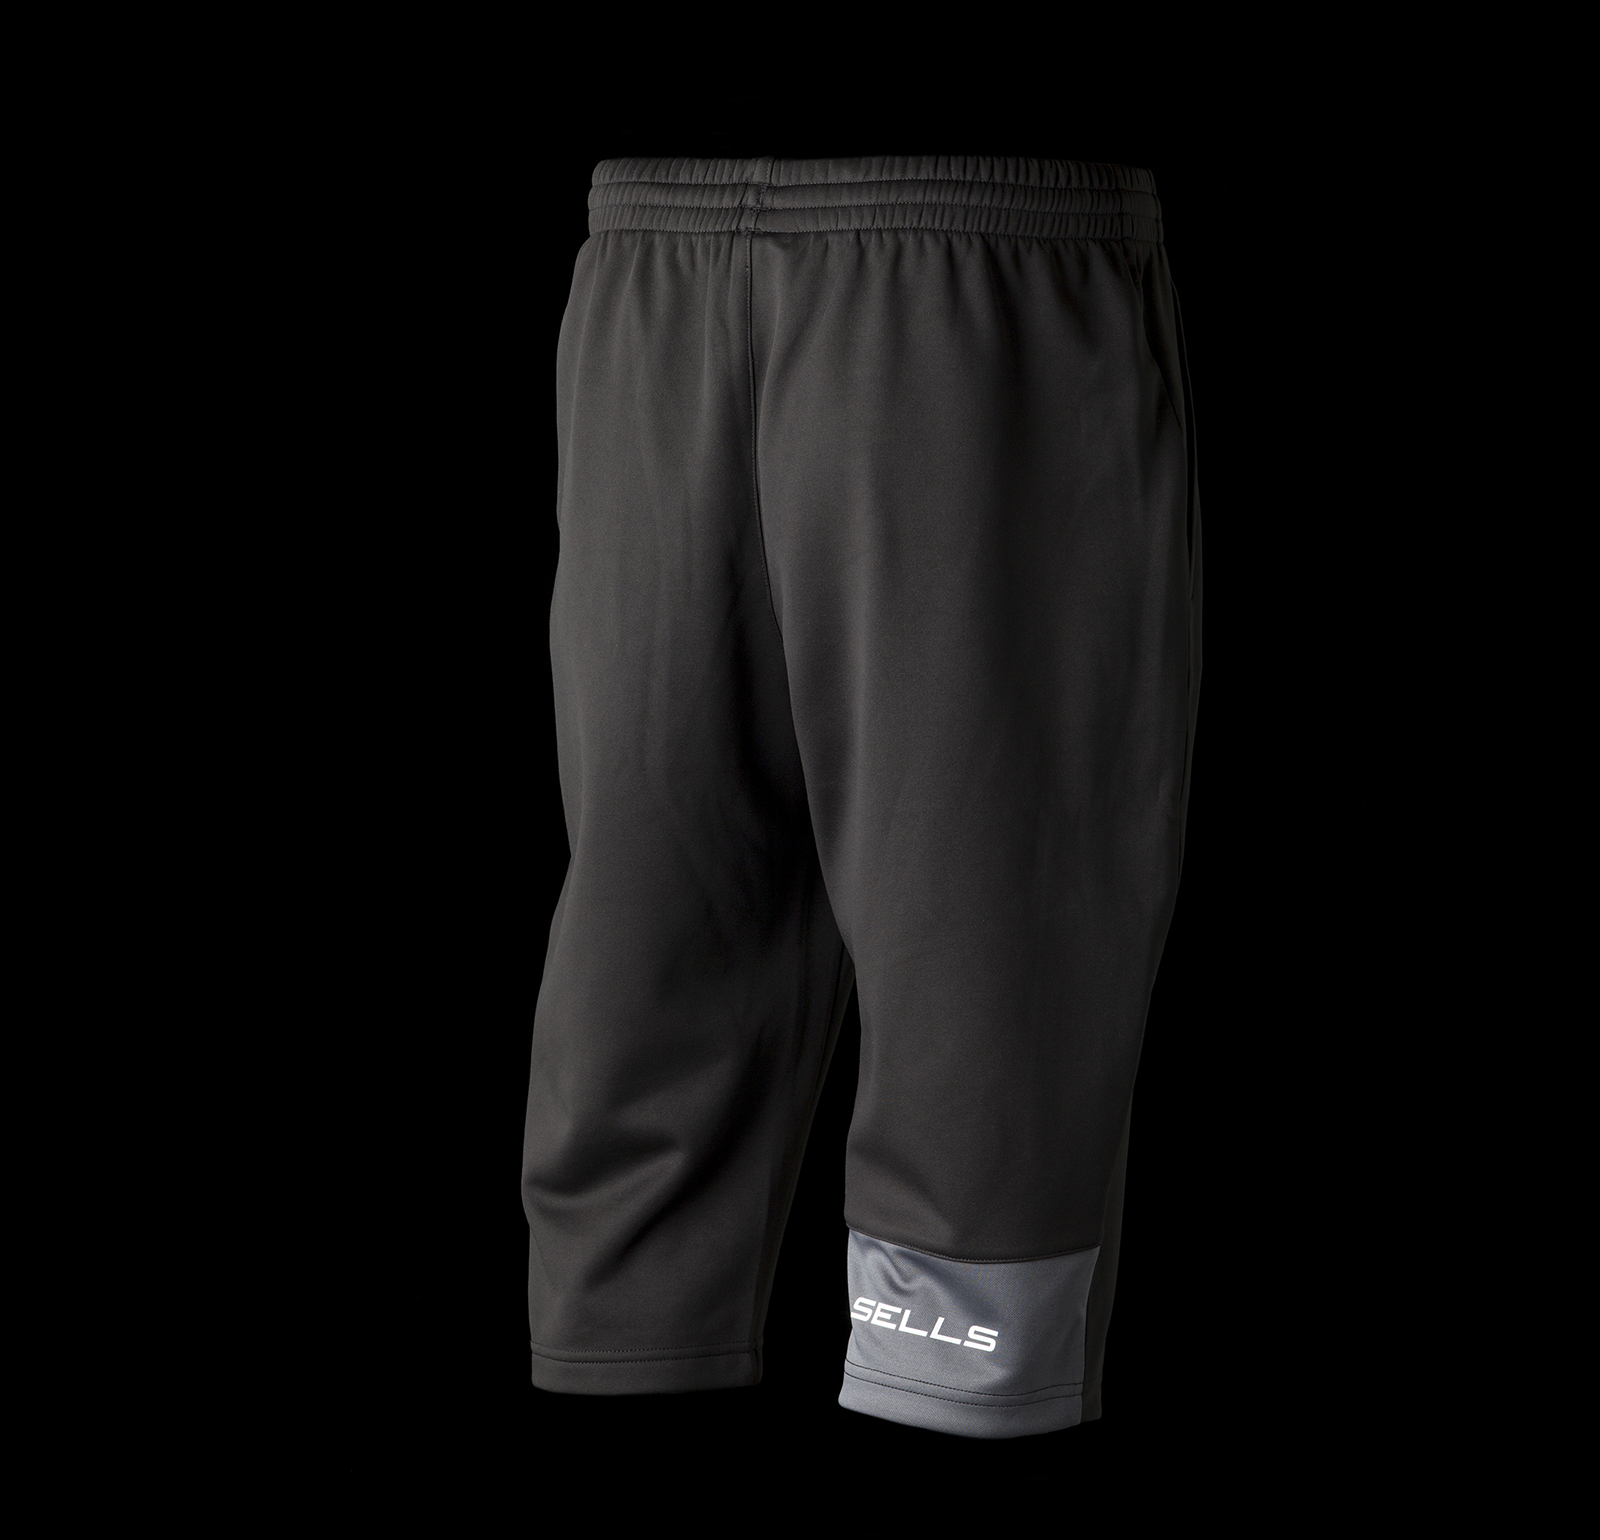 excel-3-4-pant-promo-43